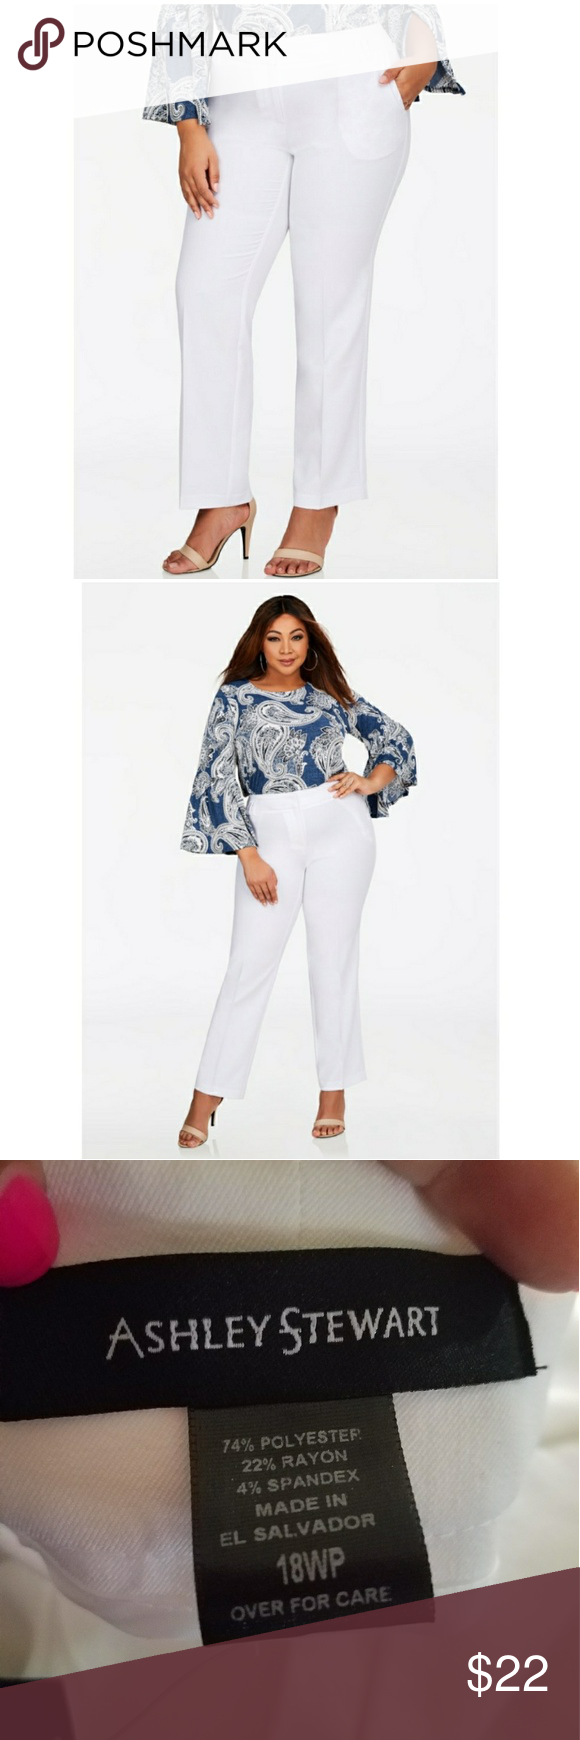 dfebc8f5a3ecf NWT Ashley Stewart Straight Leg White Pants Ashley Stewart straight legged  plus size petite white pants. Never worn. Ashley Stewart Pants Straight Leg